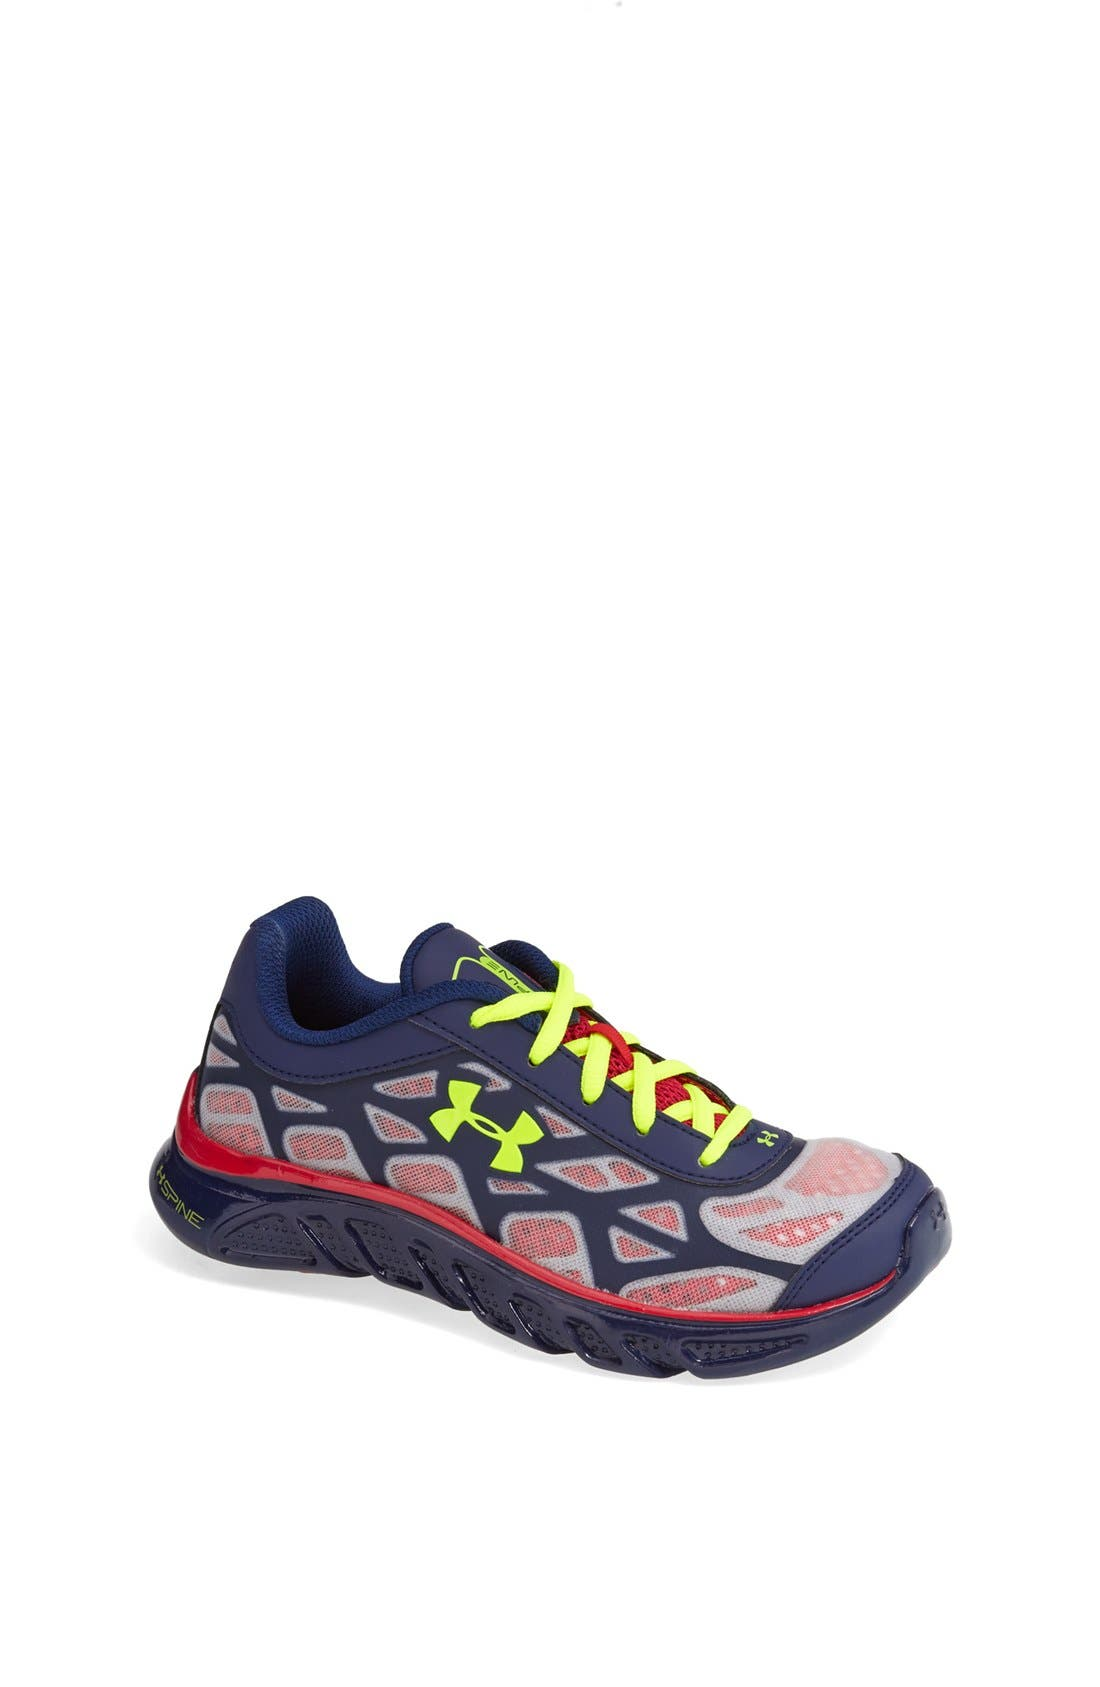 Alternate Image 1 Selected - Under Armour 'Spine™ - Vice Super Hero' Athletic Shoe (Toddler & Little Kid)